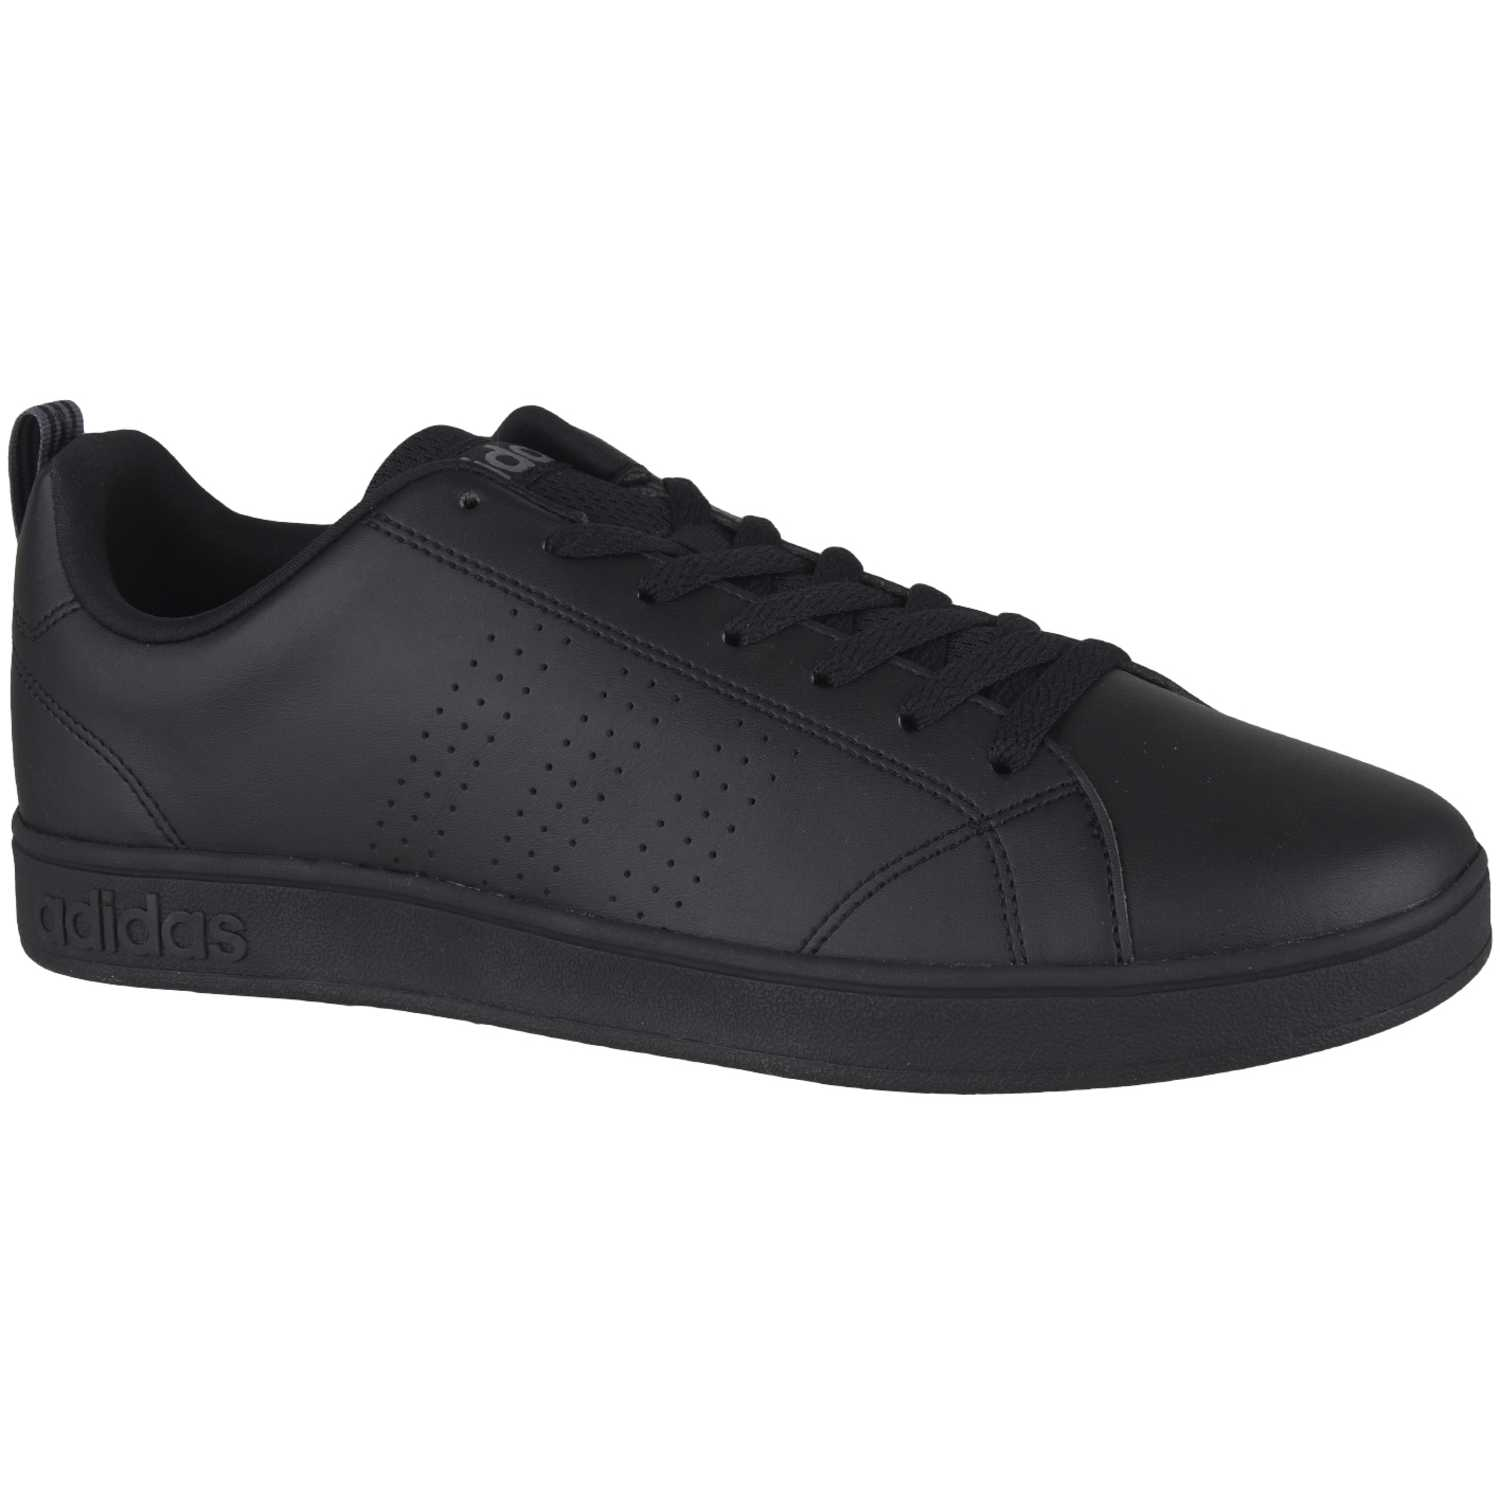 finest selection 8b3d0 88de1 Zapatilla de Hombre adidas NEO Negro vs advantage cl